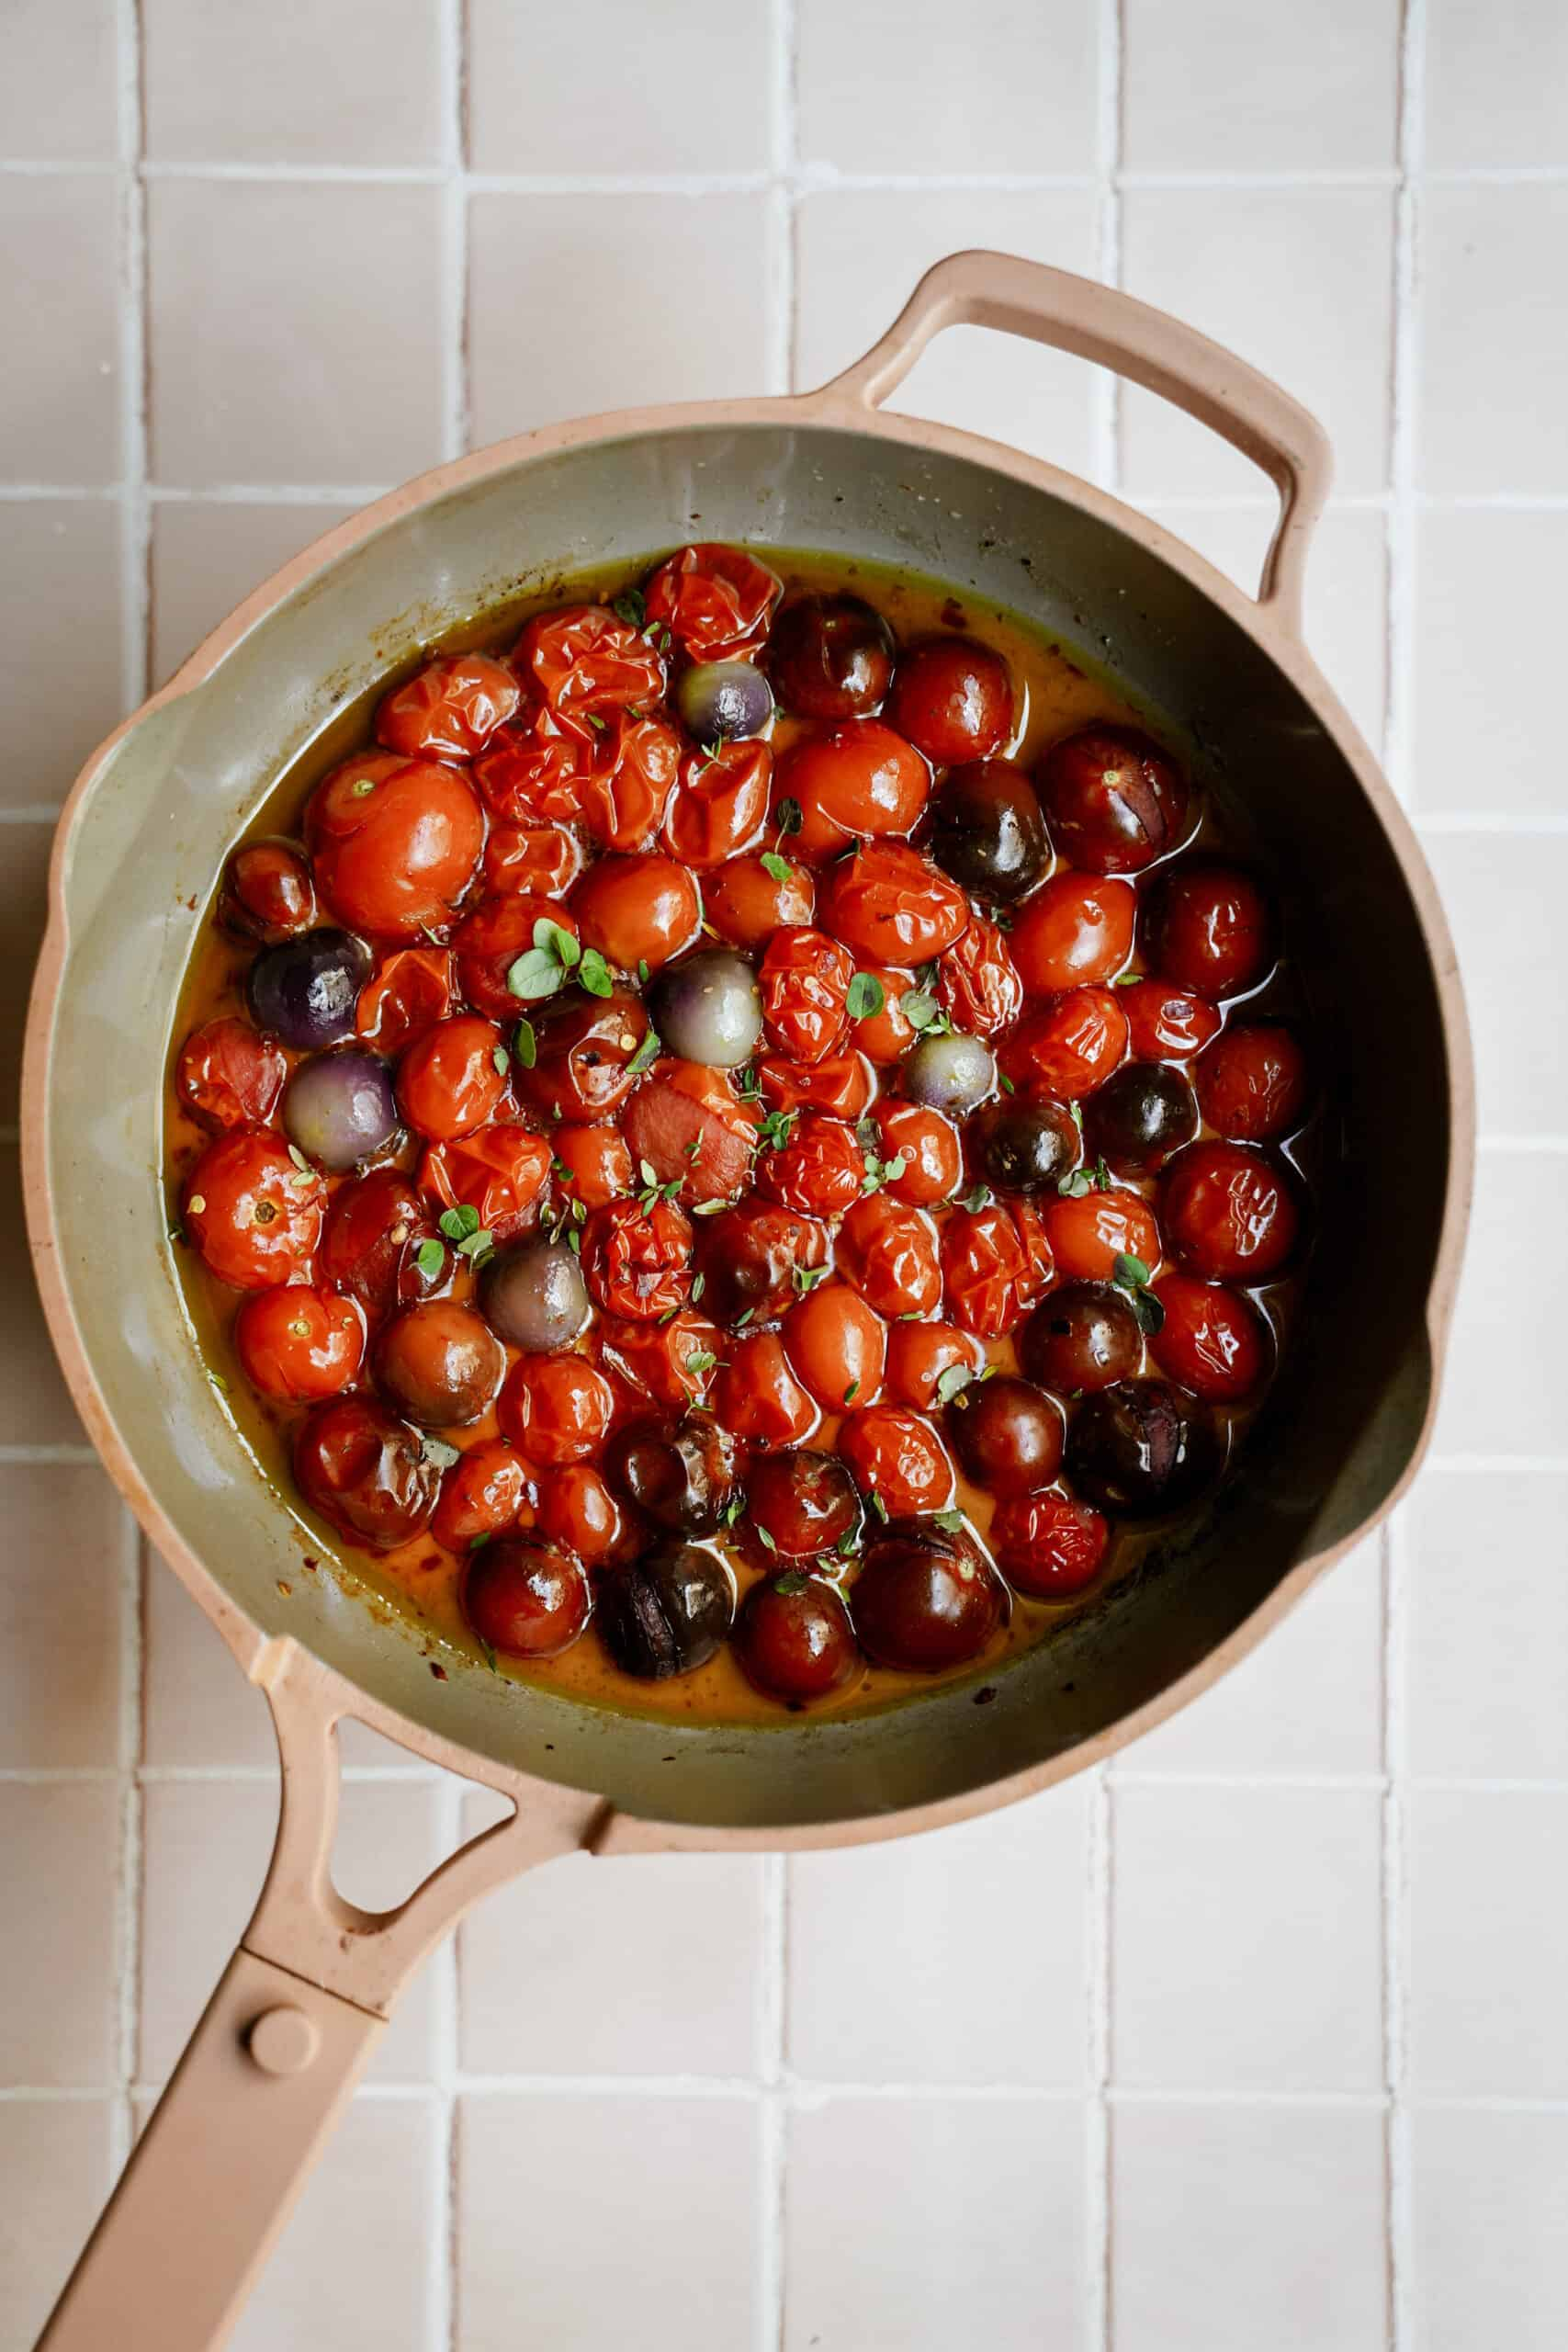 Roasted tomatoes in a pot